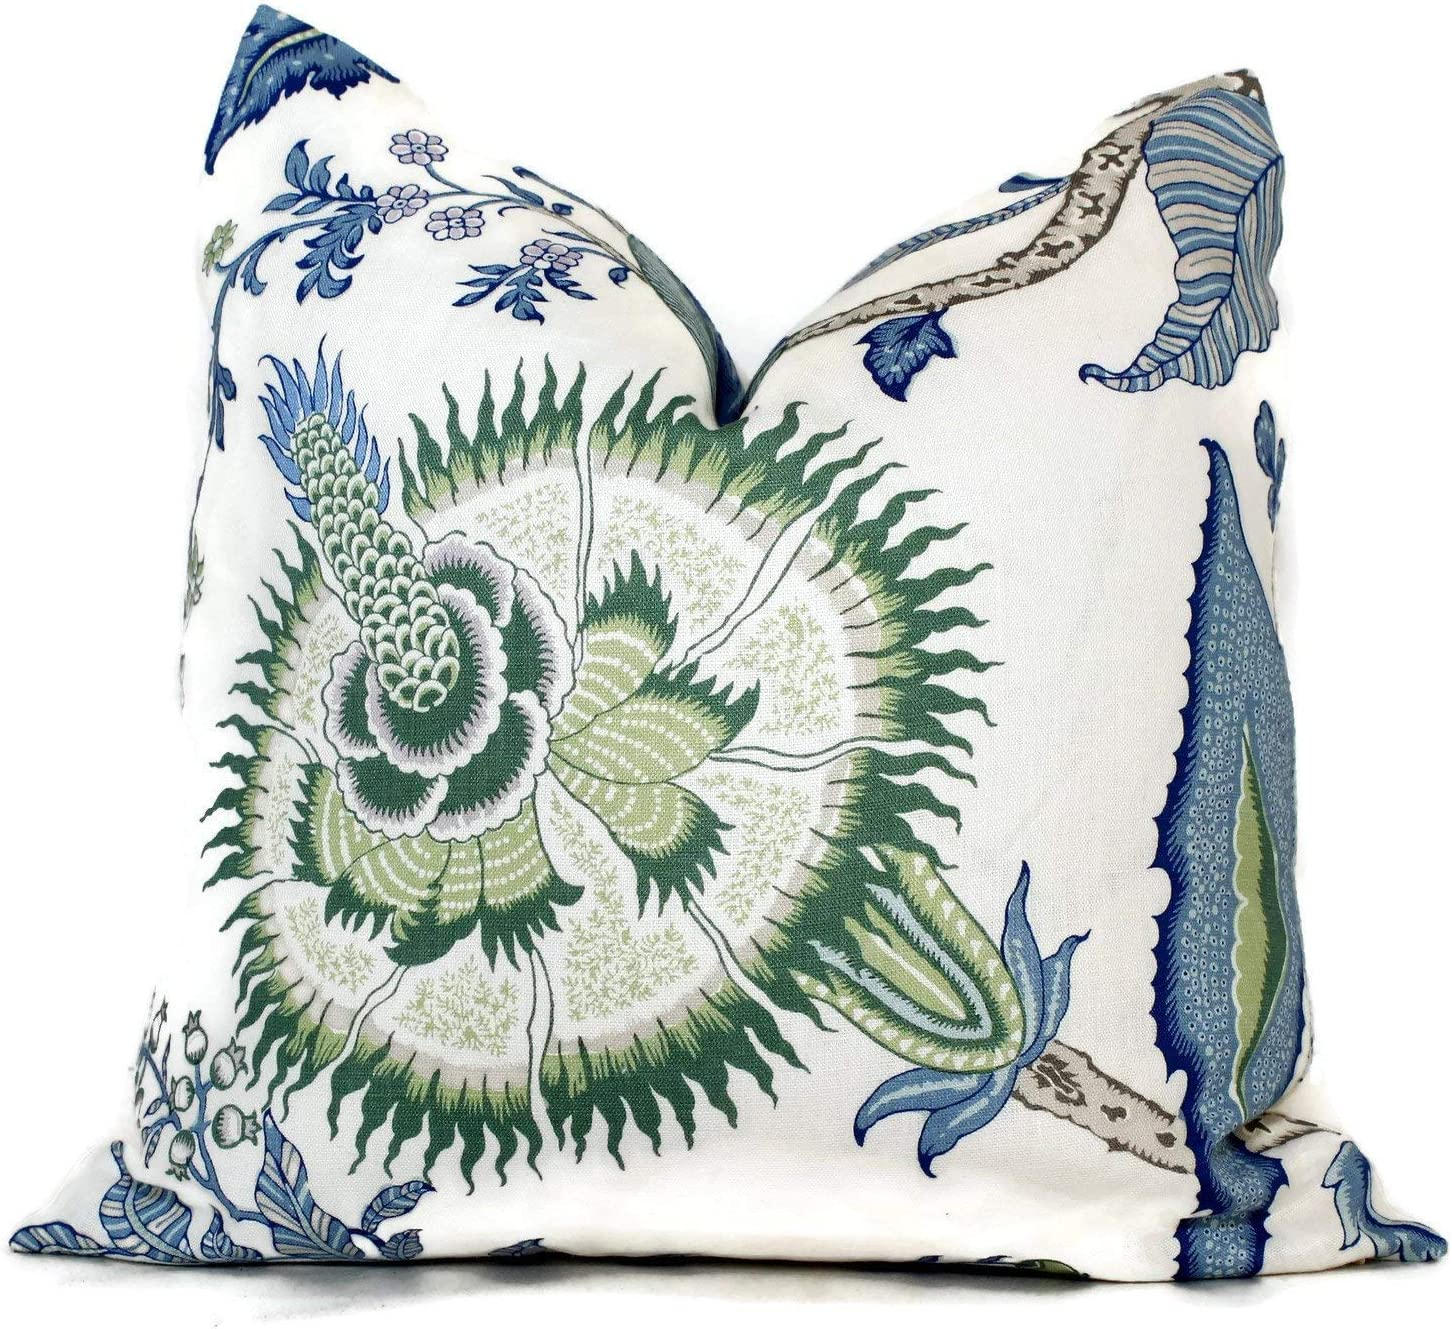 20 x 20 F Outdoor Basket-woven Blue and White Diamond Pattern Cushion Cover Schumacher Tortola in the color Marine Pillow Cover